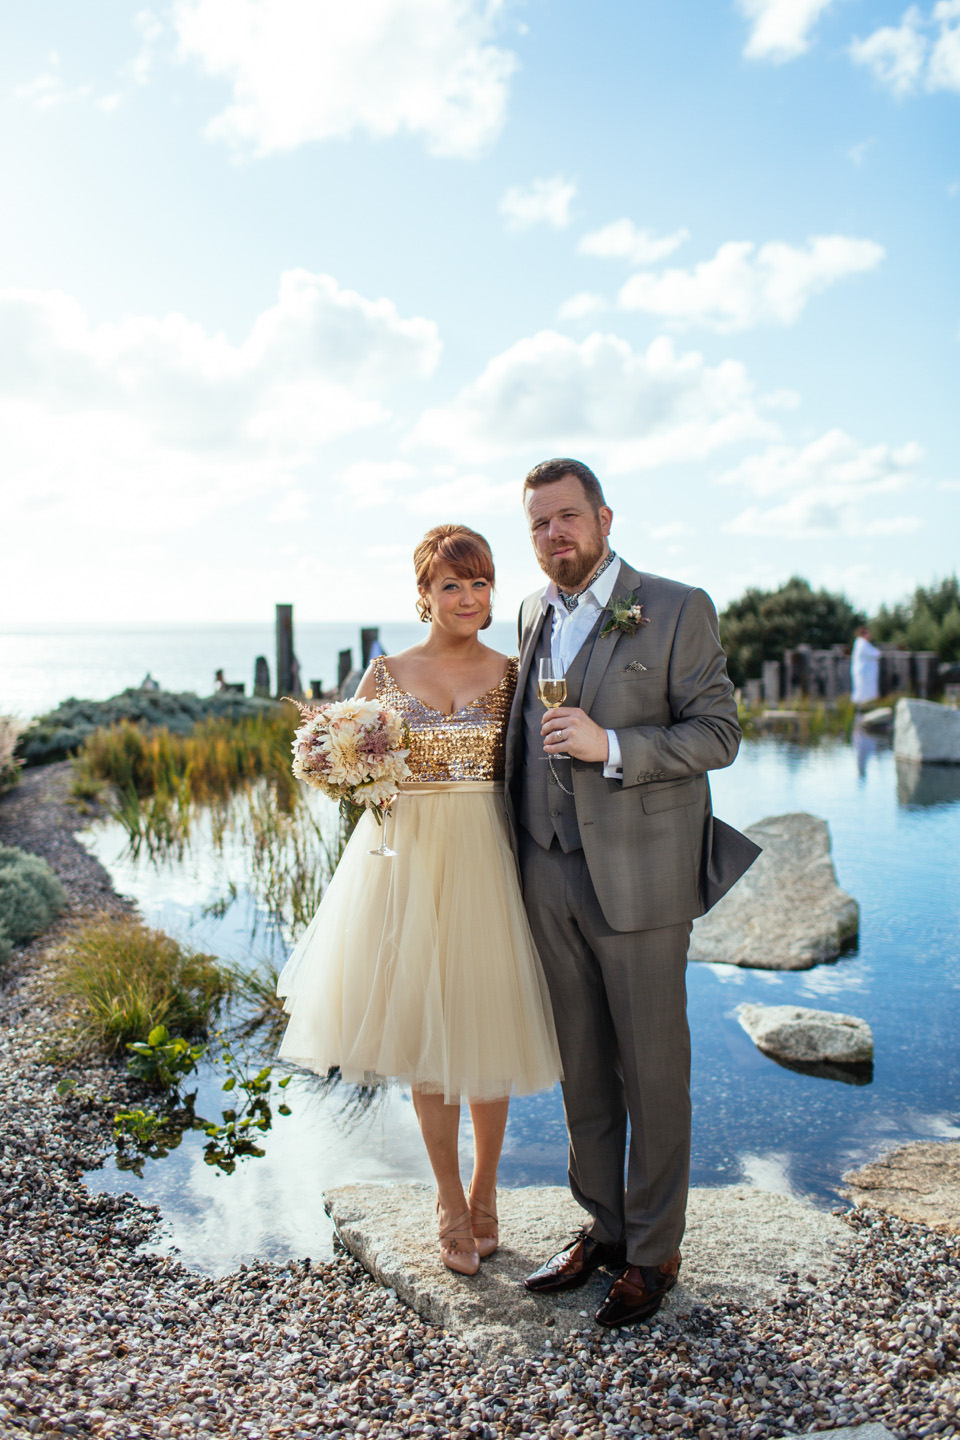 An Incredible Sequinned Vintage Dress for an Intimate Cornish Beach Wedding